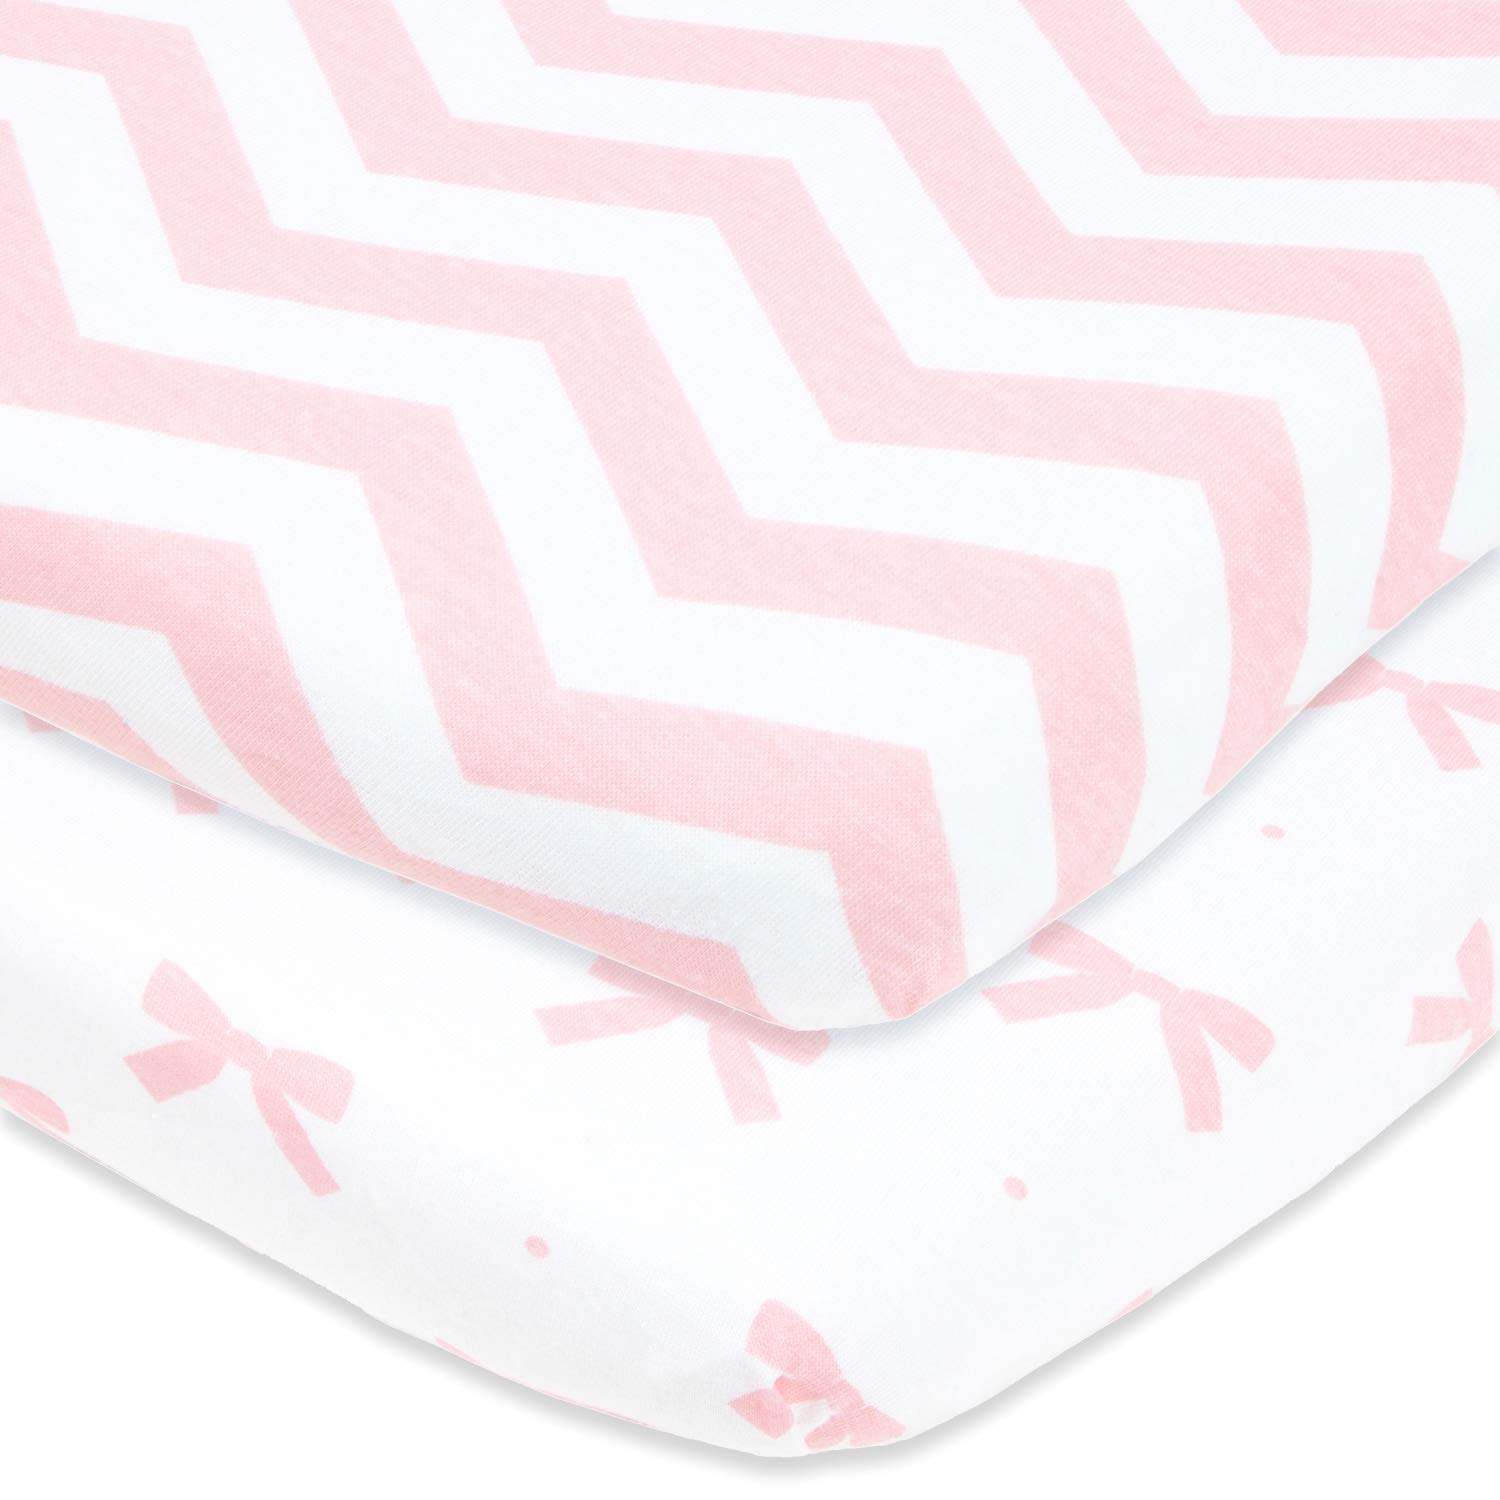 Cuddly Cubs Pack n Play Sheets | 2 Pack Playard Sheet for Baby Girl and Boy | 100% Jersey Cotton Unisex Mini Portable Crib Sheets | Bows and Chevron in Grey and Pink | Fits Graco, Joovy & Others by Cuddly Cubs (Image #1)